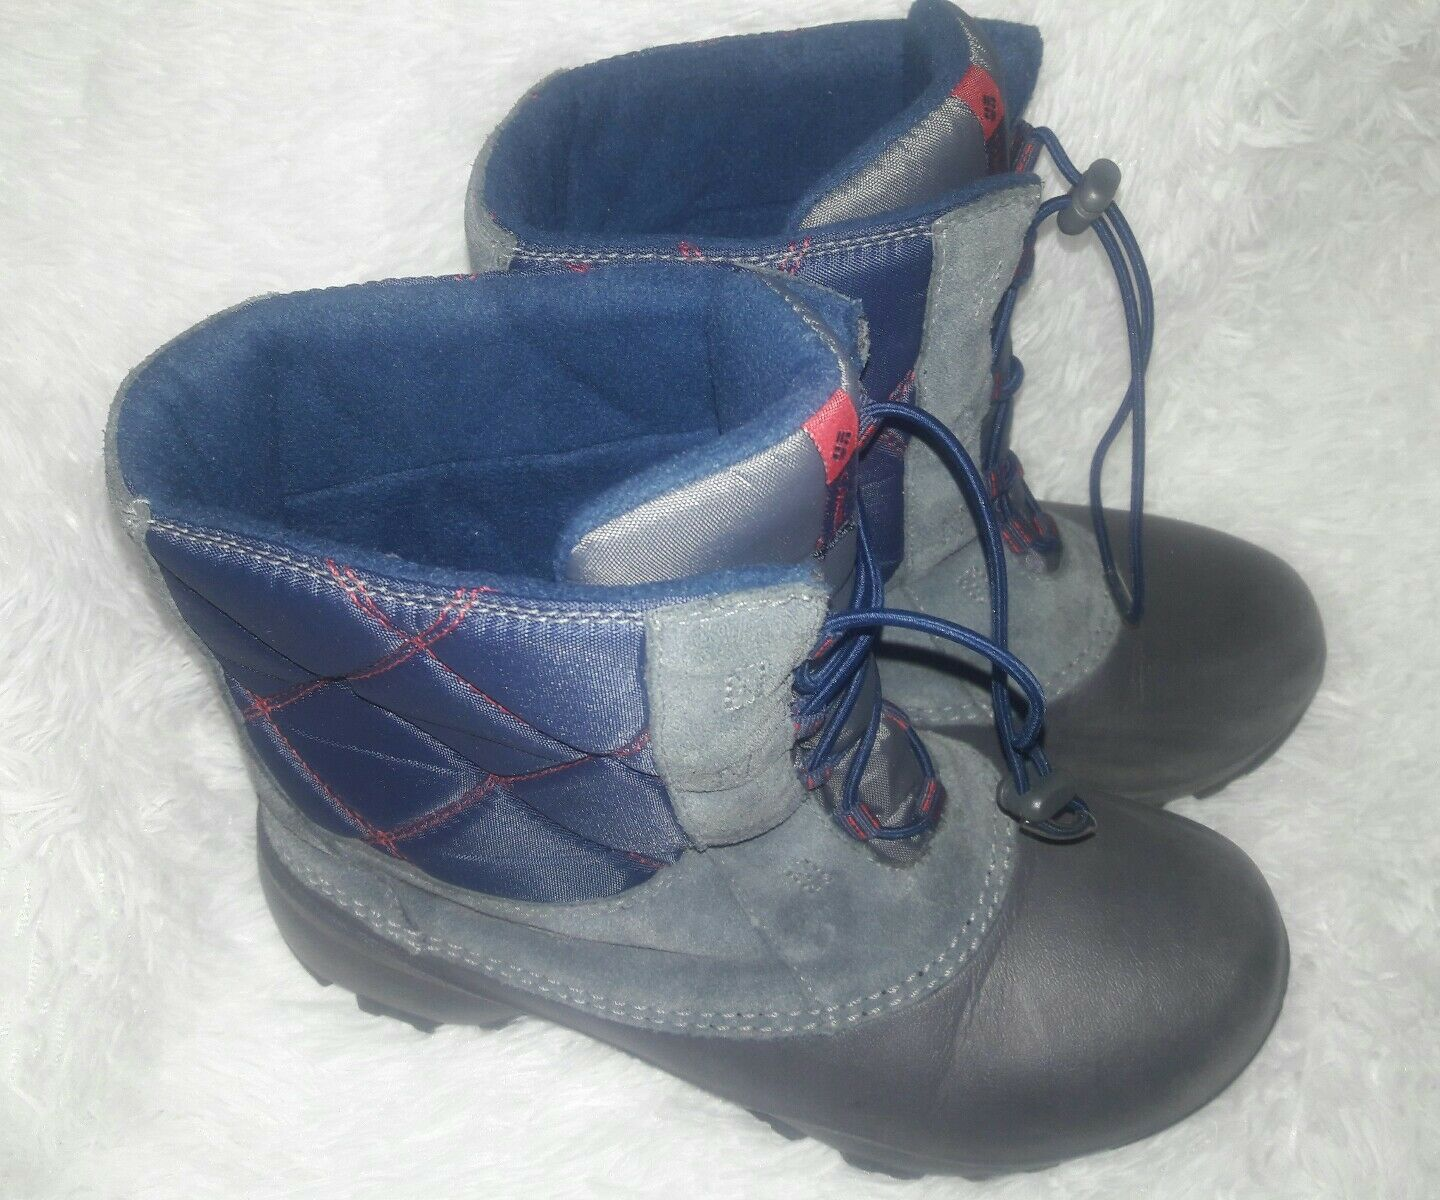 Columbia gray 200 grams Waterproof Boots Women's Size 6 Grey/Red/Navy blue